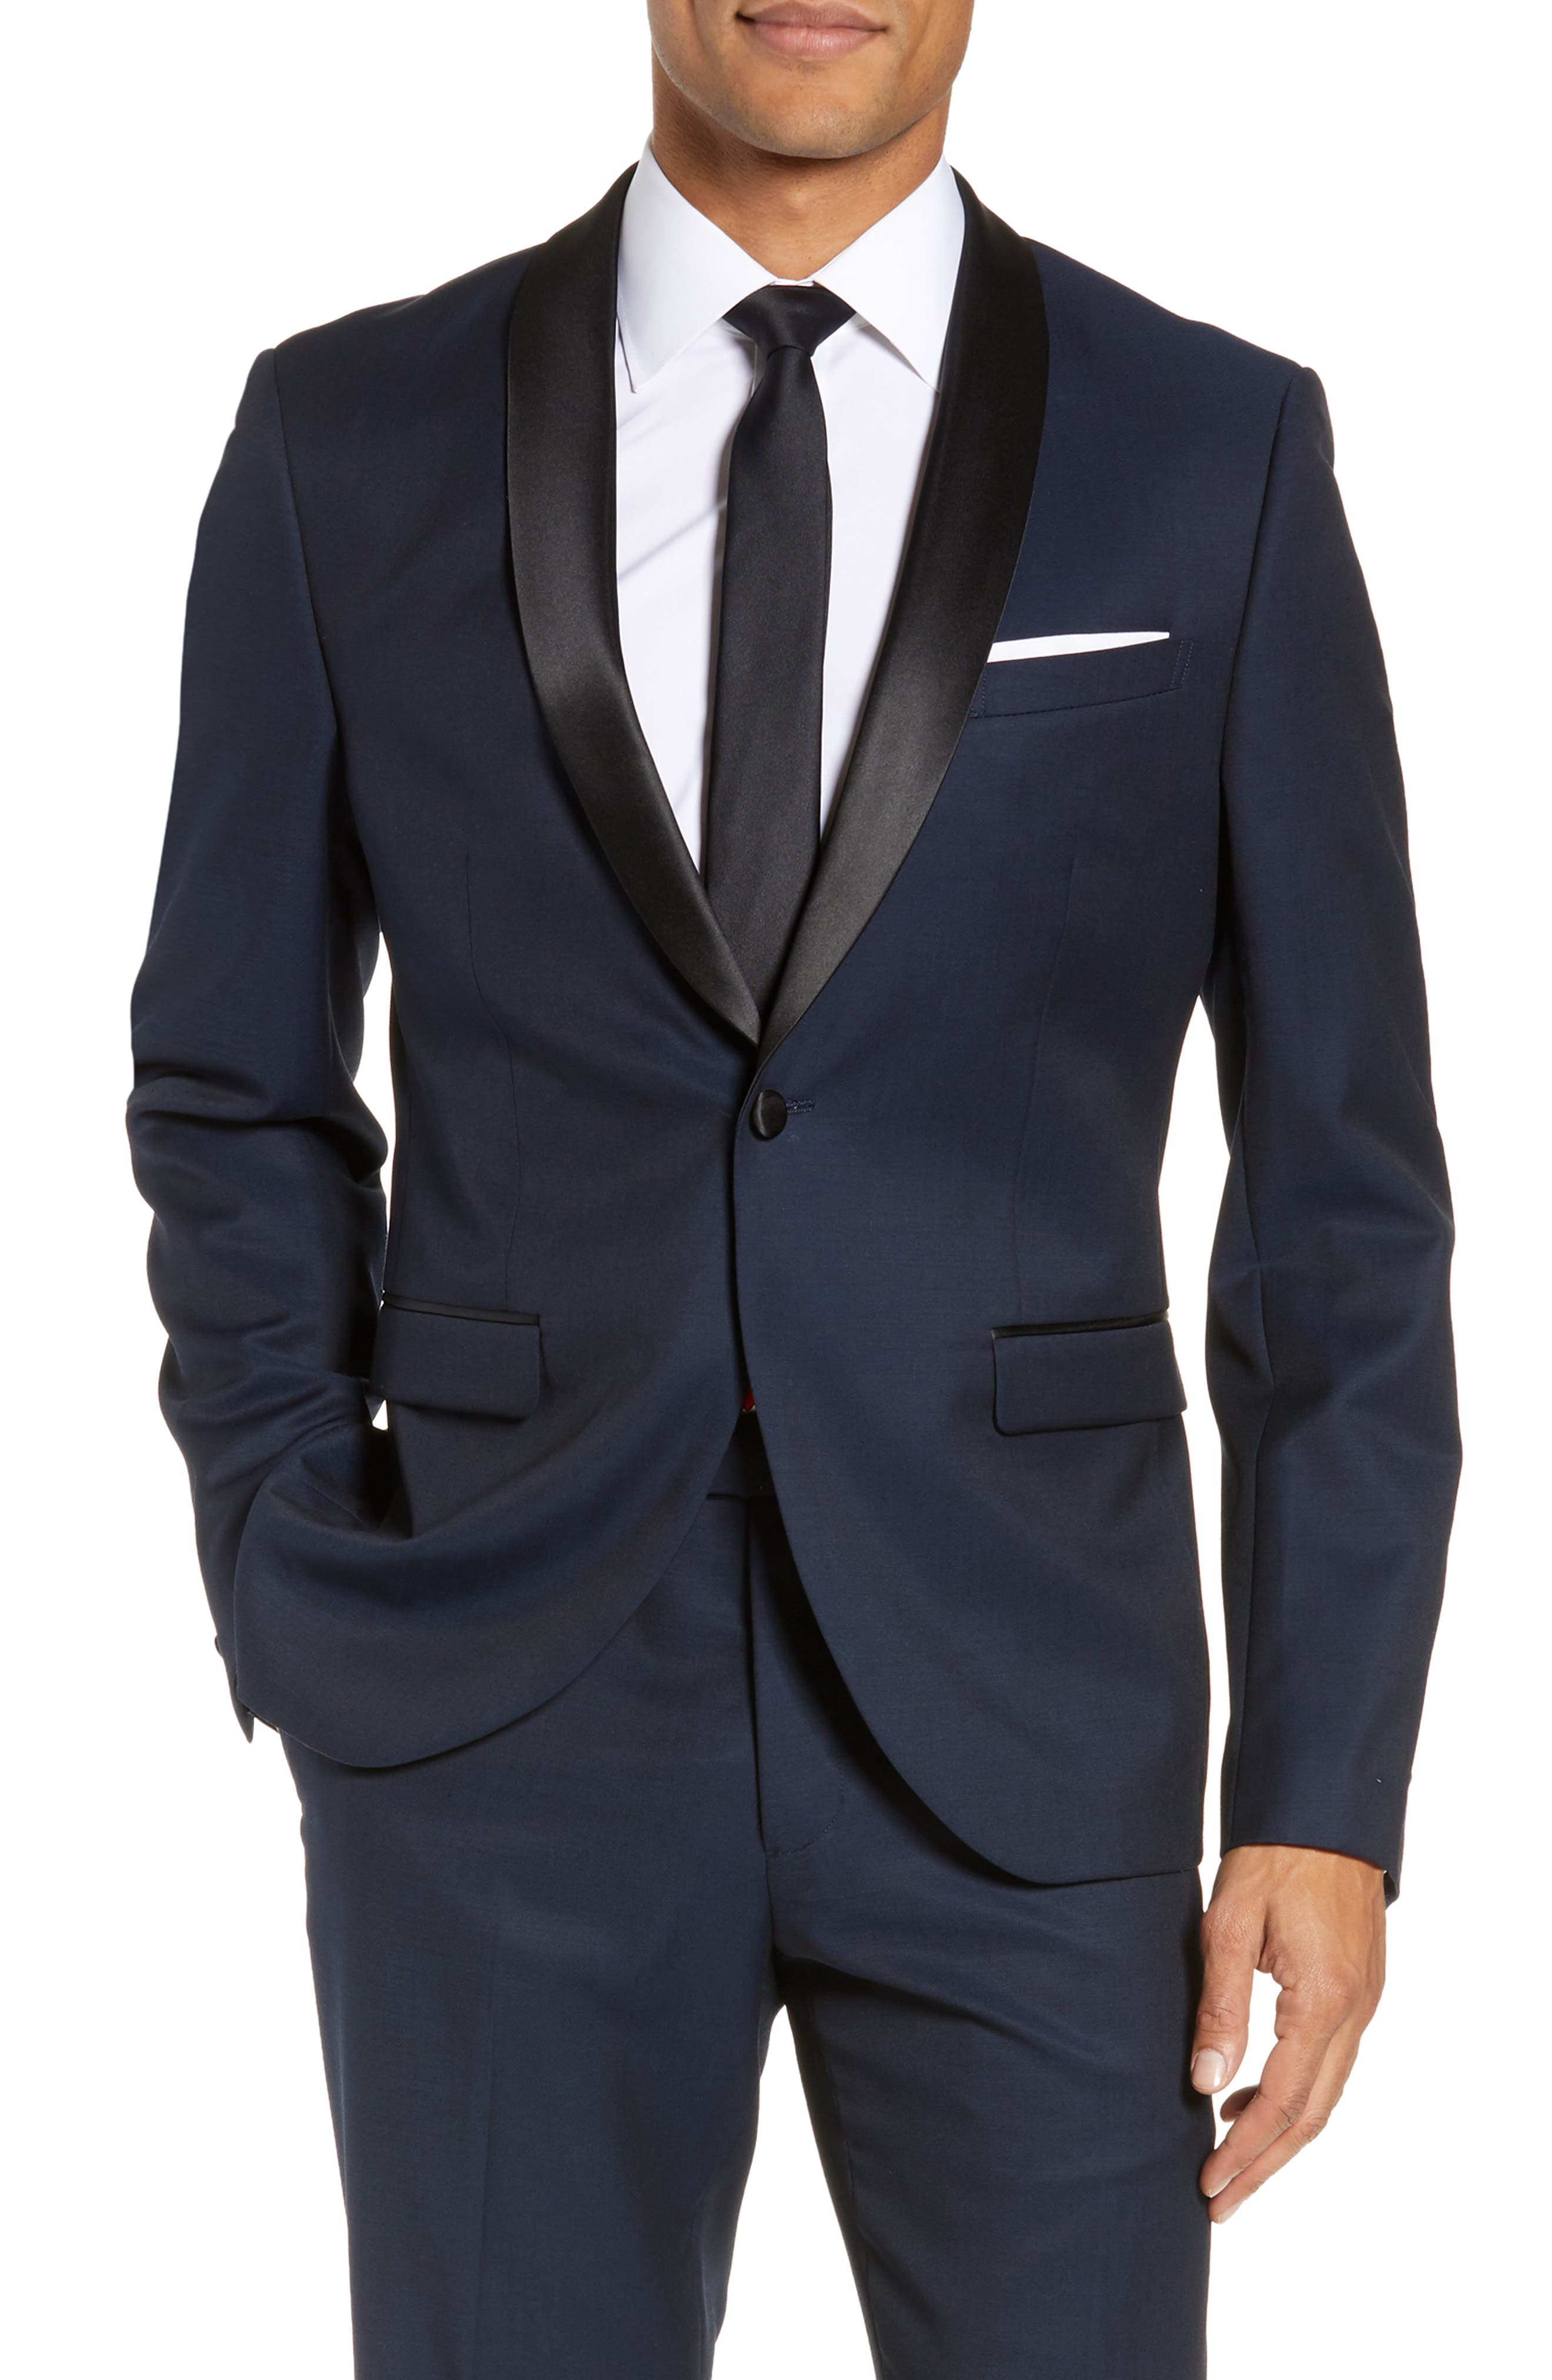 CALIBRATE Extra Trim Fit Shawl Dinner Jacket, Main, color, HIGH BLUE